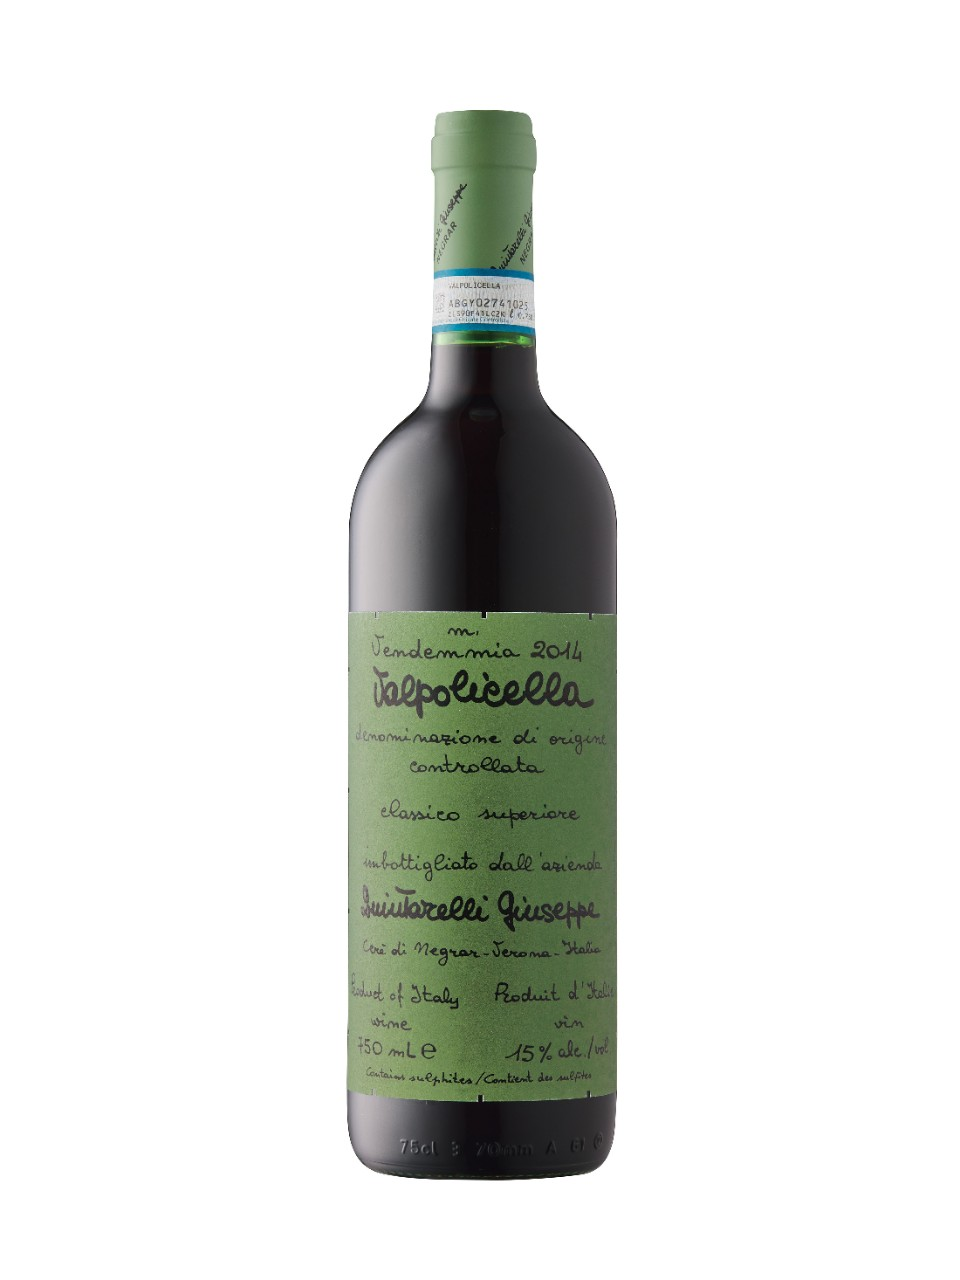 Image for Quintarelli Valpolicella Classico Superiore 2010 from LCBO